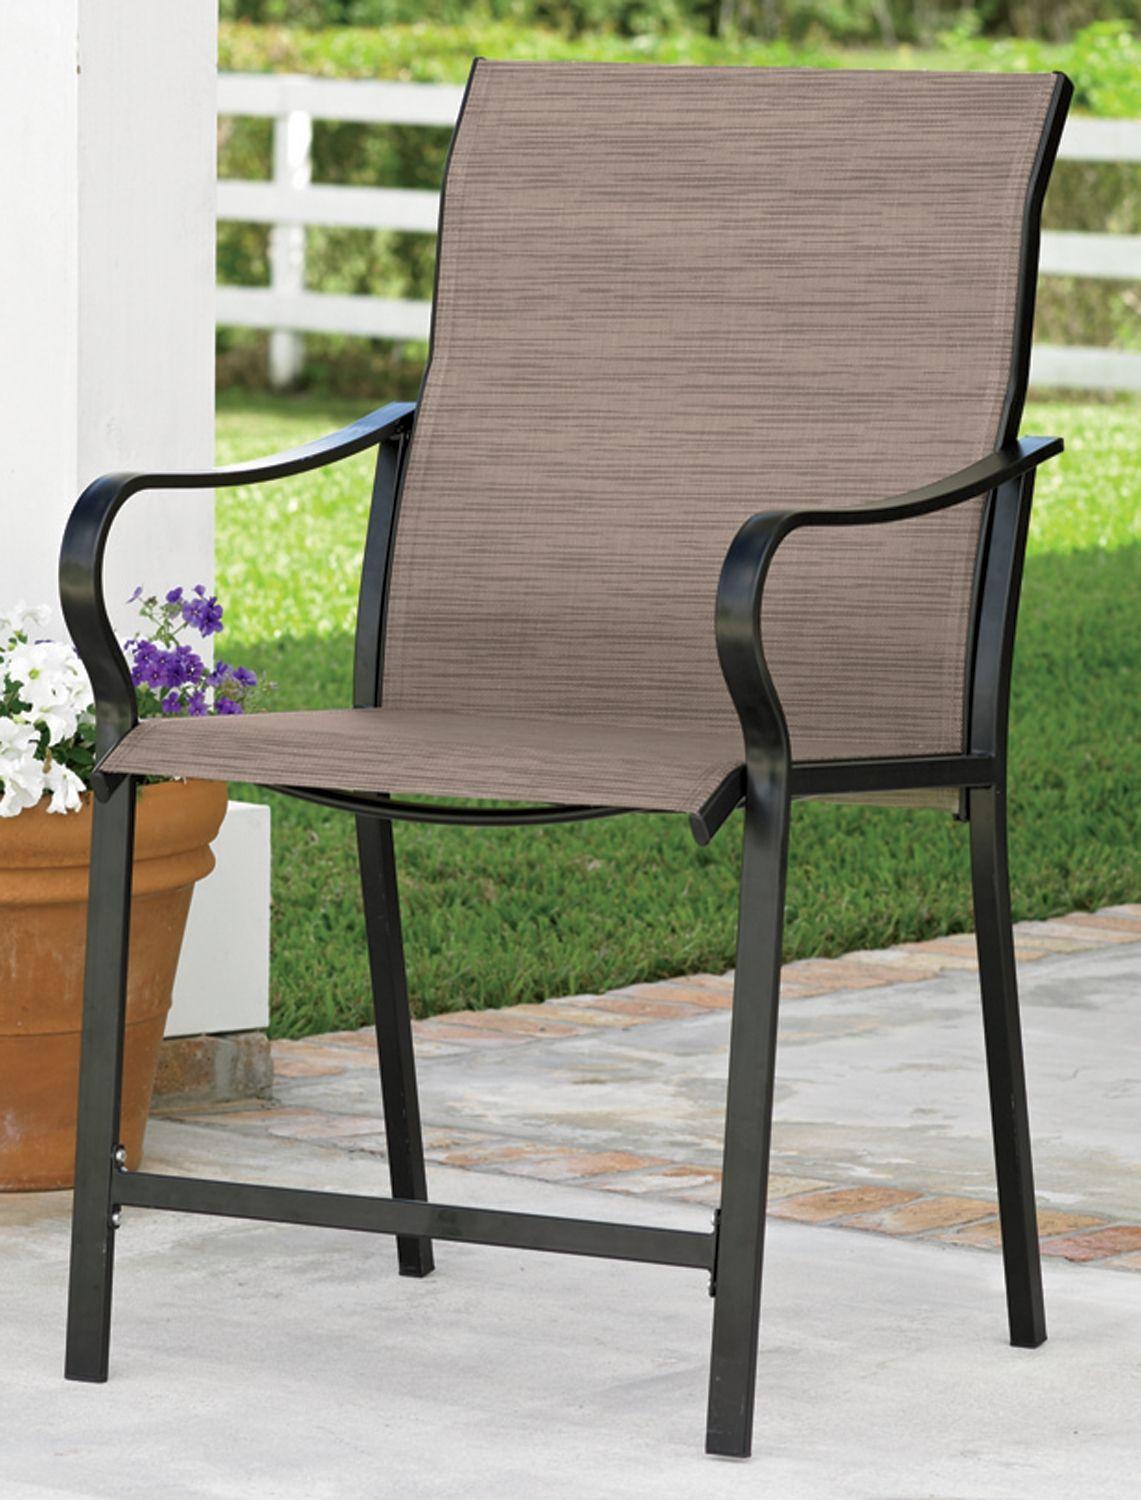 Extra-Wide High-Back Patio Chair - Extra-Wide High-Back Patio Chair Extra Wide Portable Chairs